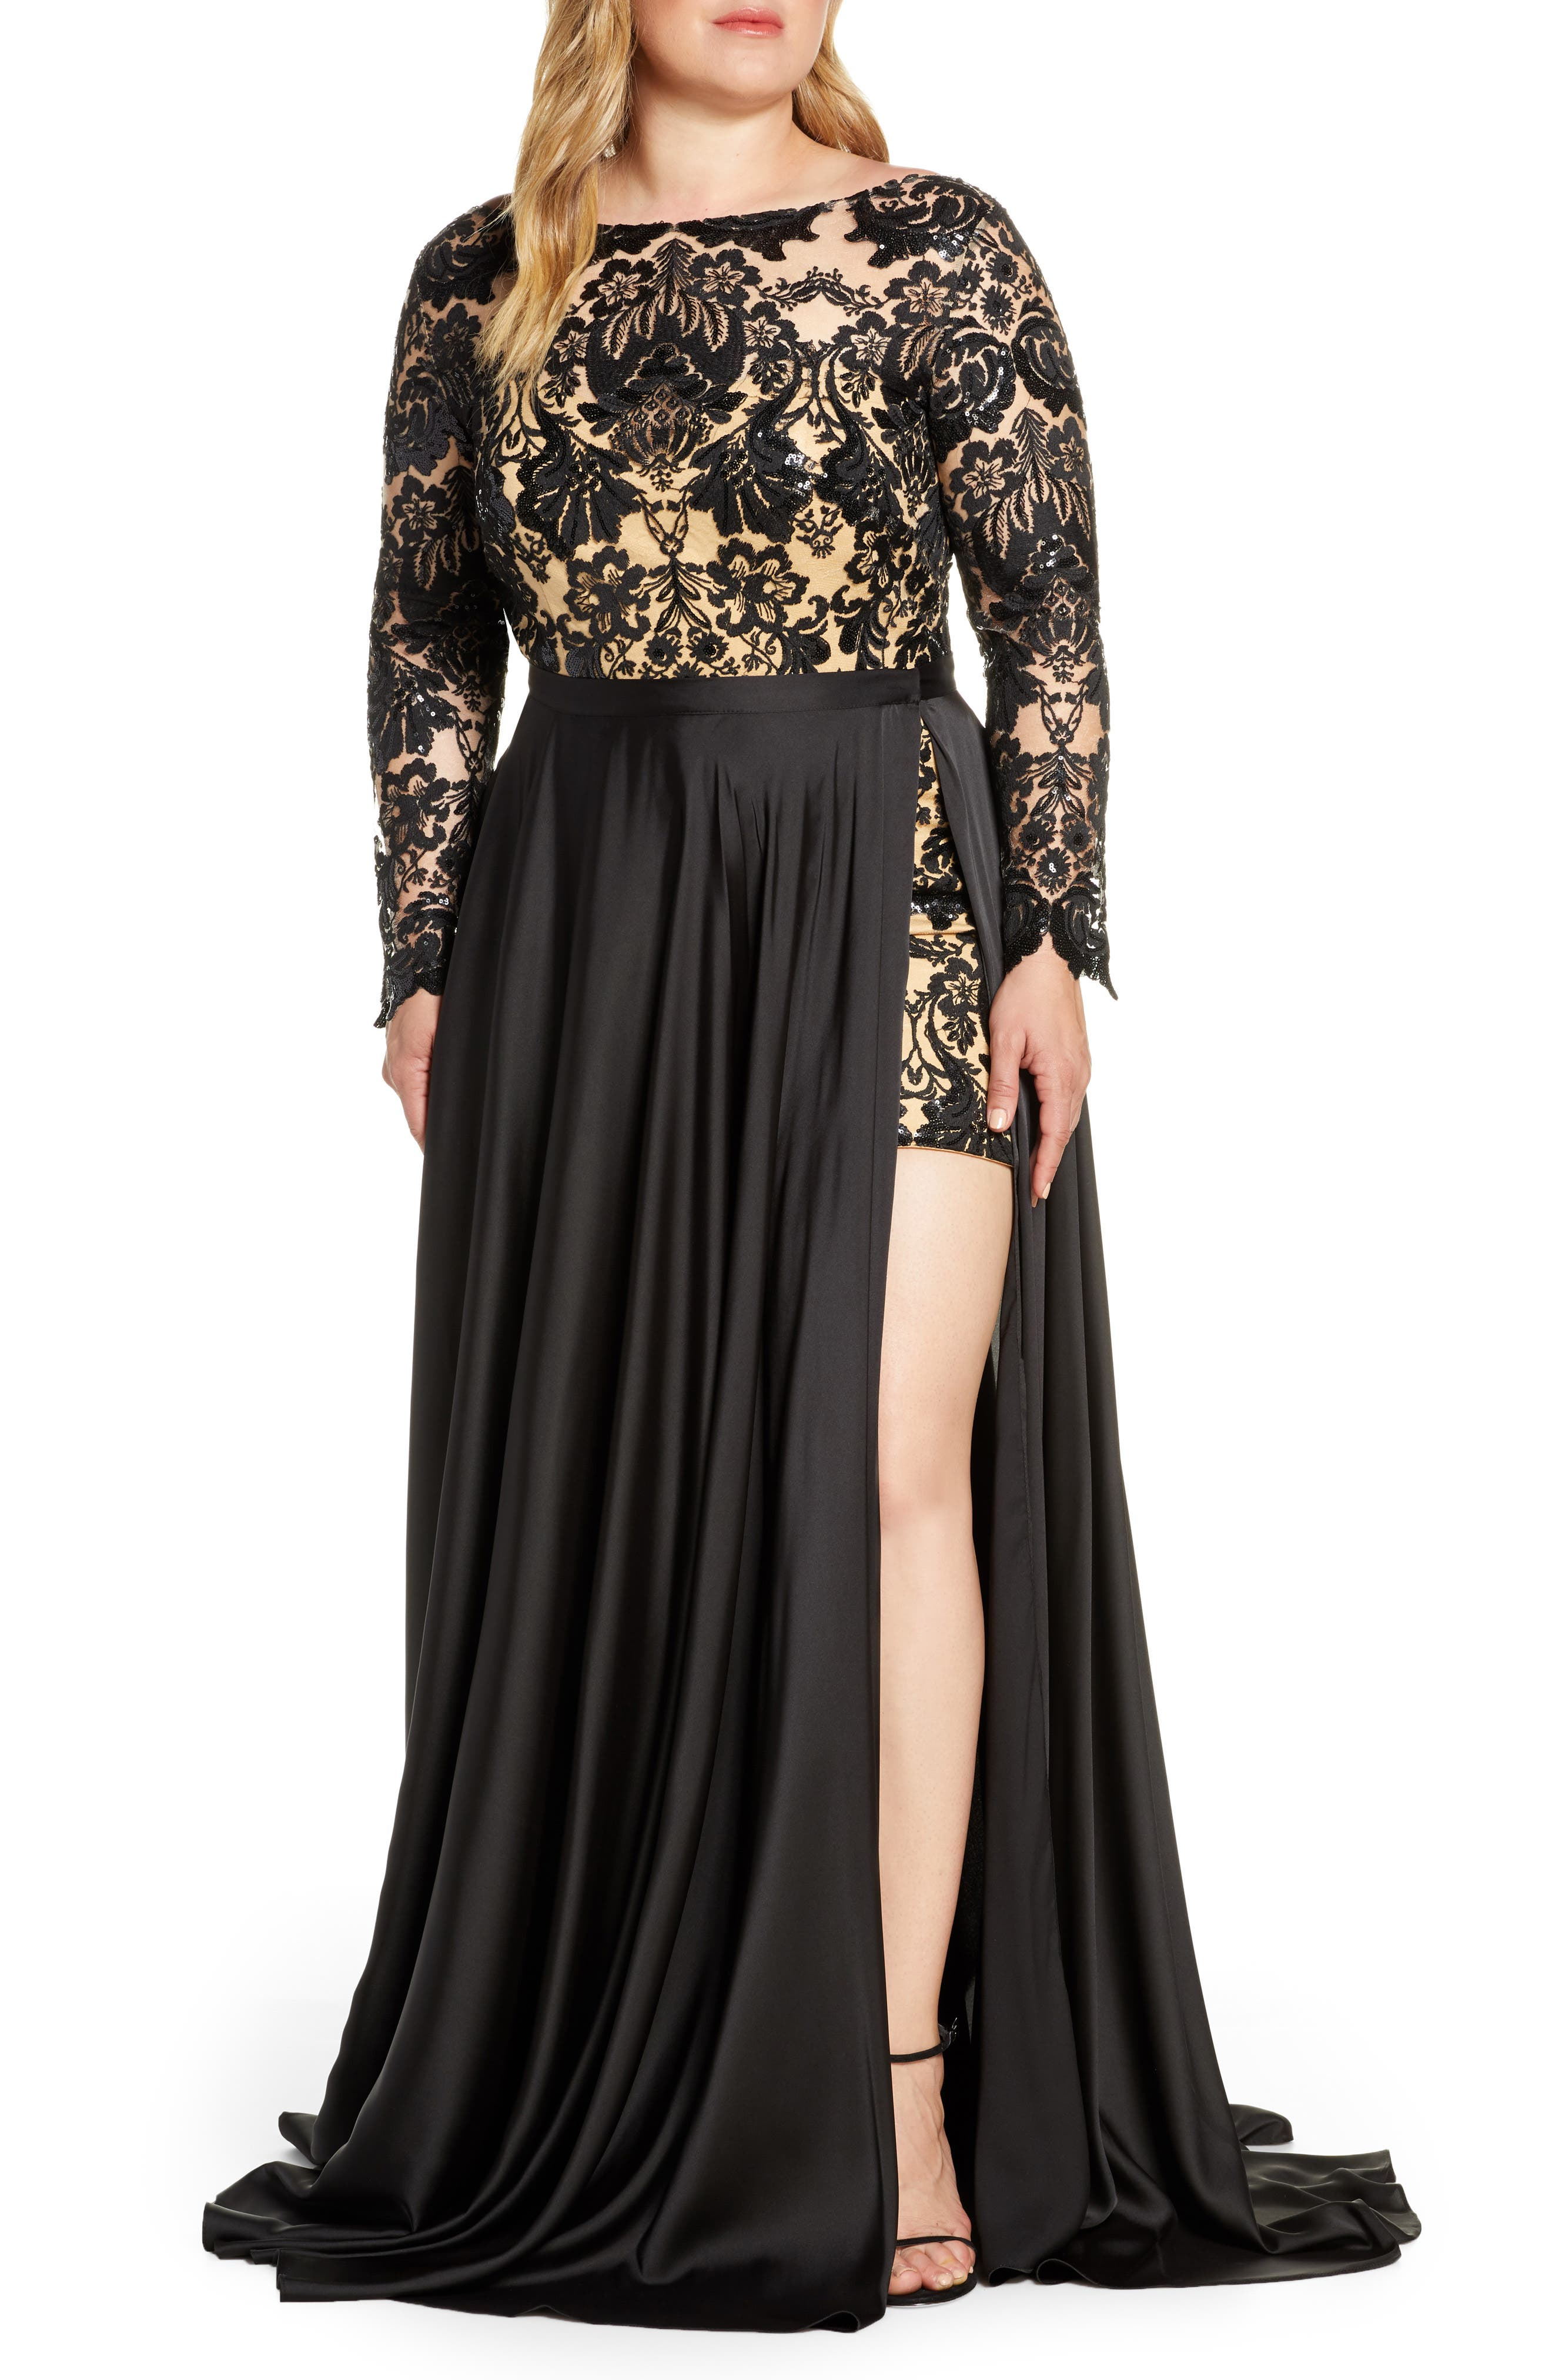 Plus Size MAC Duggal Floral Sequin Long Sleeve Romper With Satin Overskirt, Black